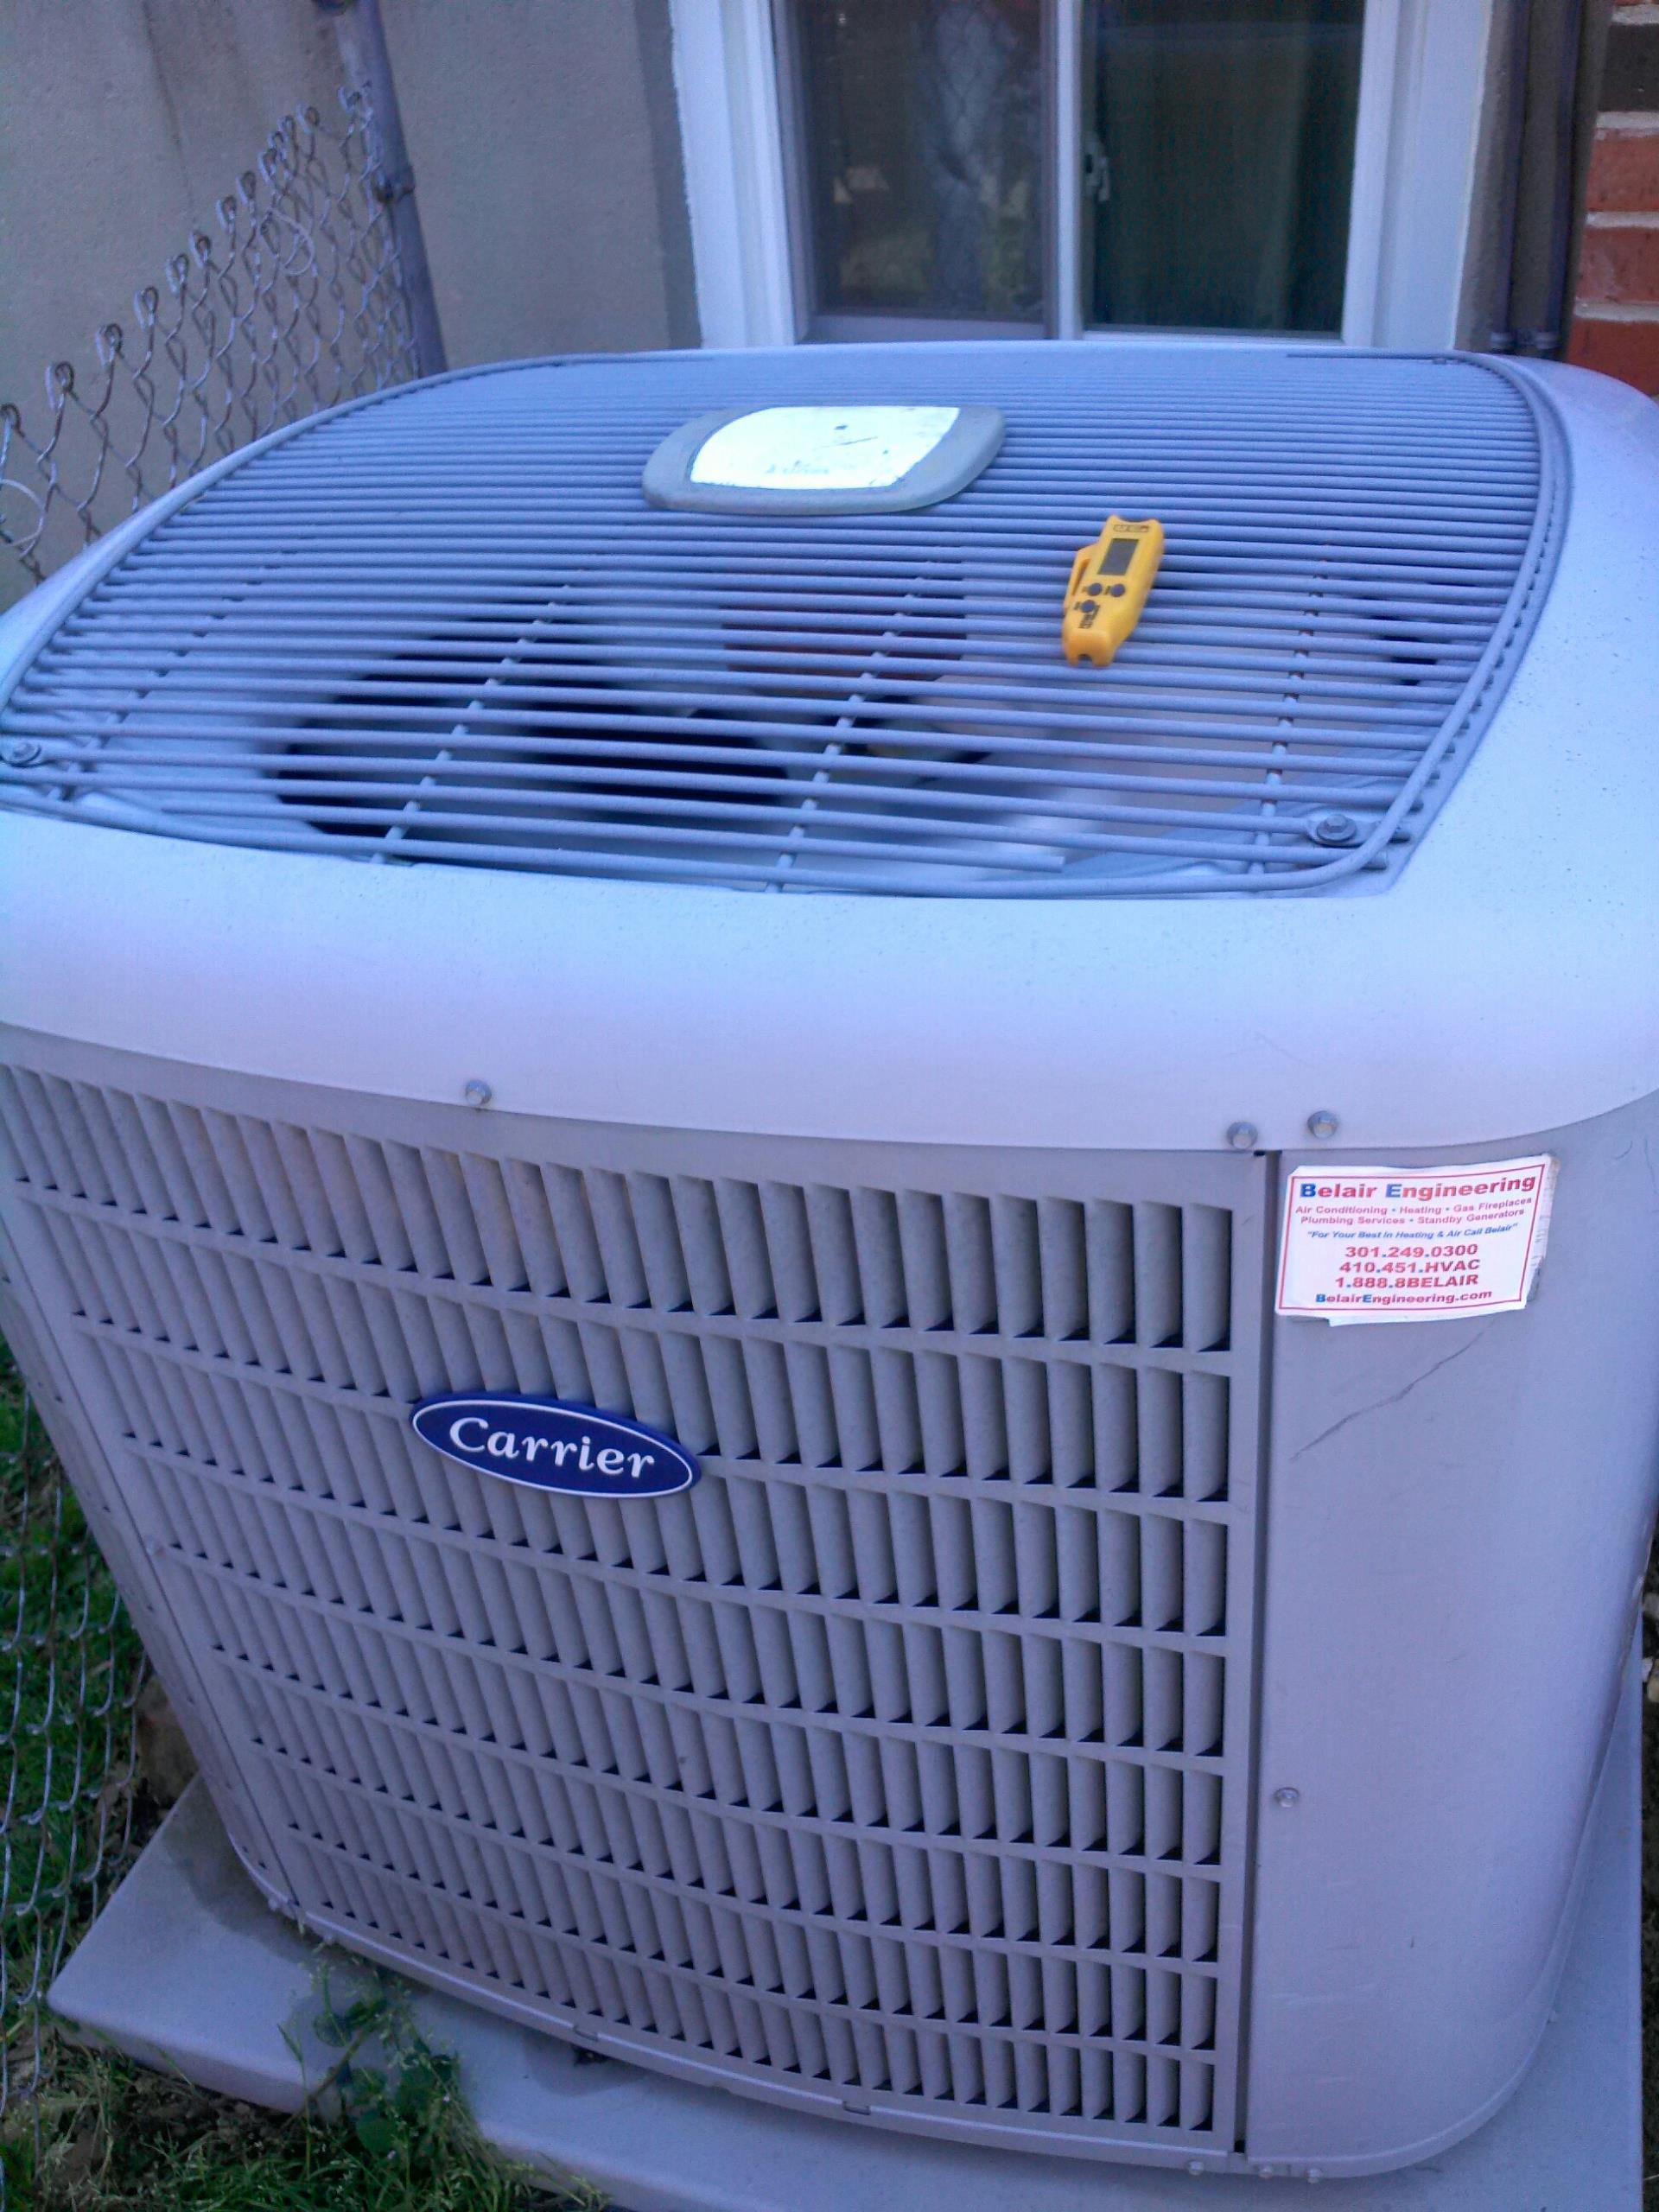 Berwyn Heights, MD - Carrier ac air conditioning & heating system repair service call Berwyn Heights Maryland